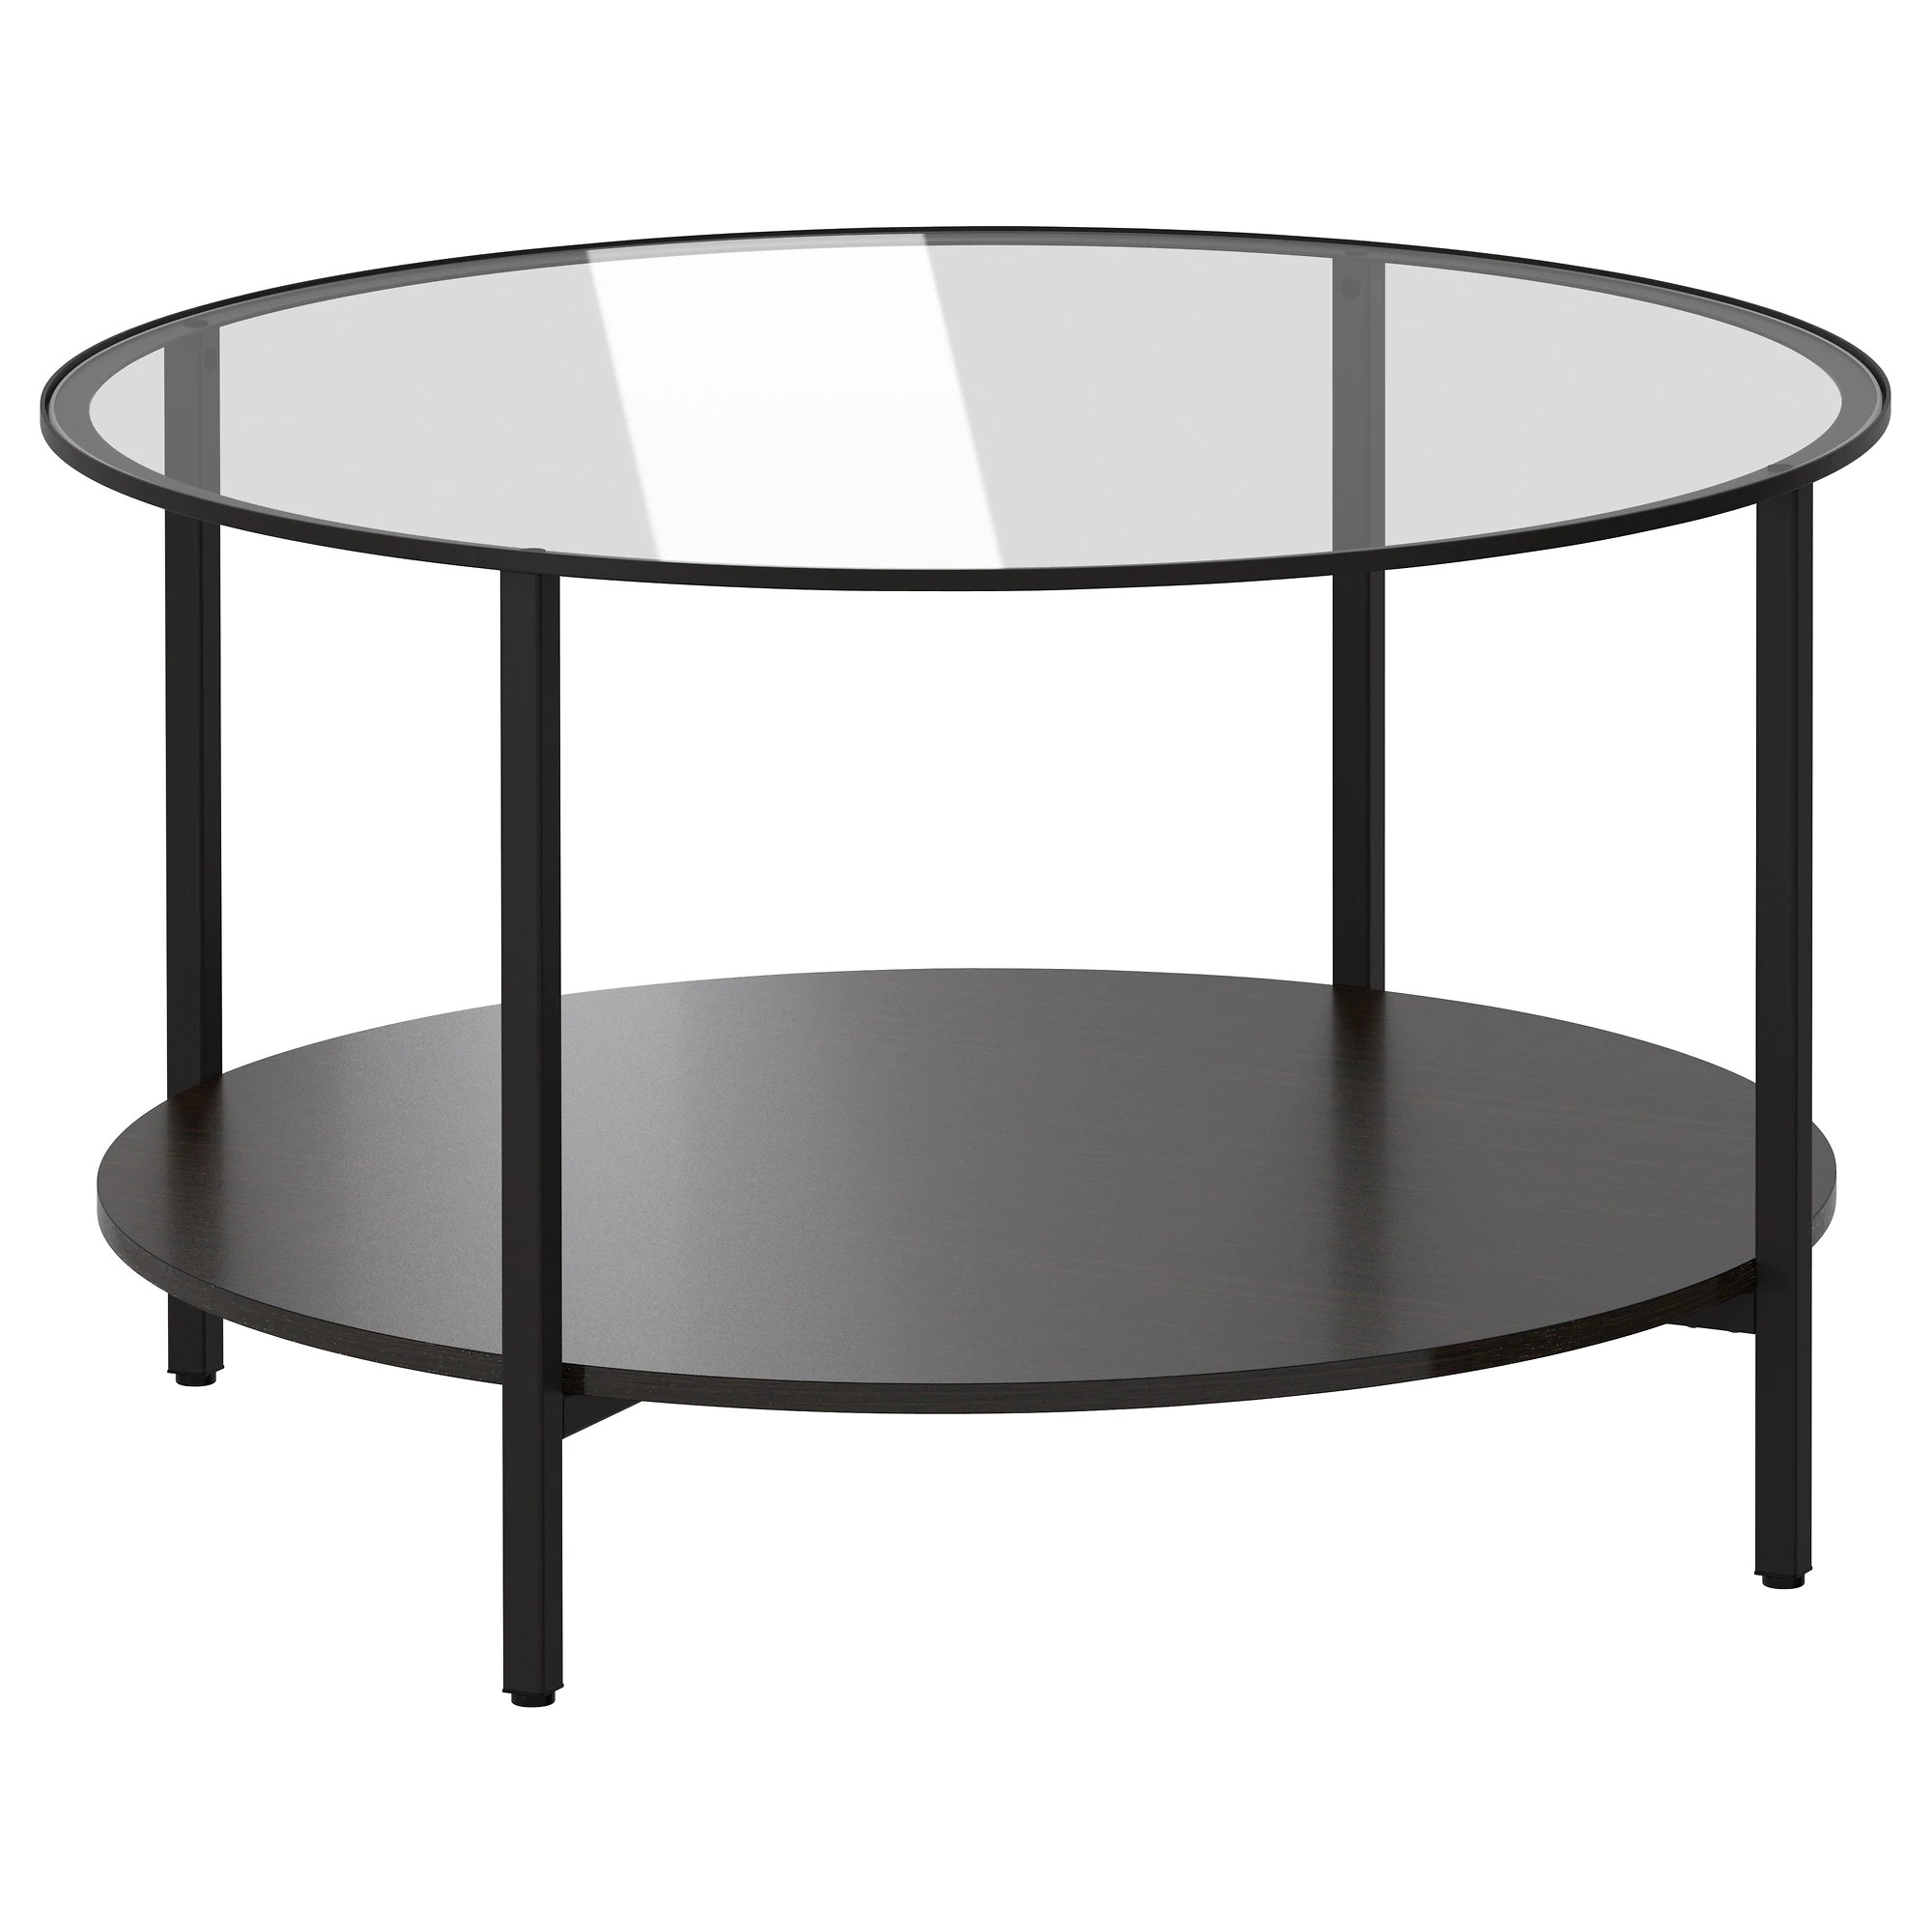 Protege Table En Verre VittsjÖ Table Basse Brun Noir Verre